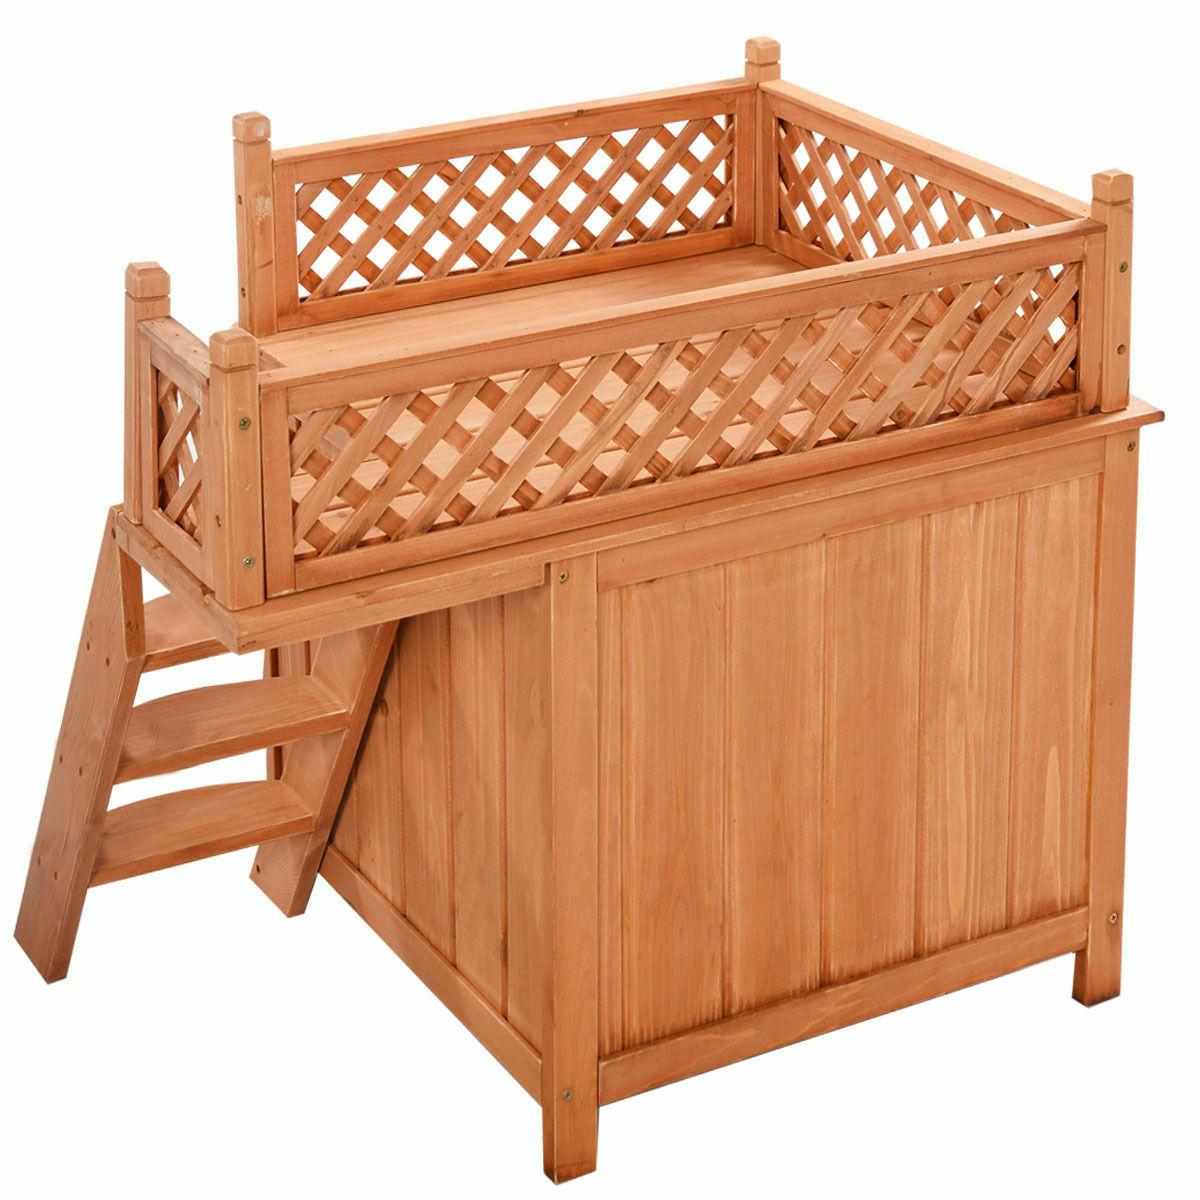 Wood Pet House Wooden Puppy & Bed